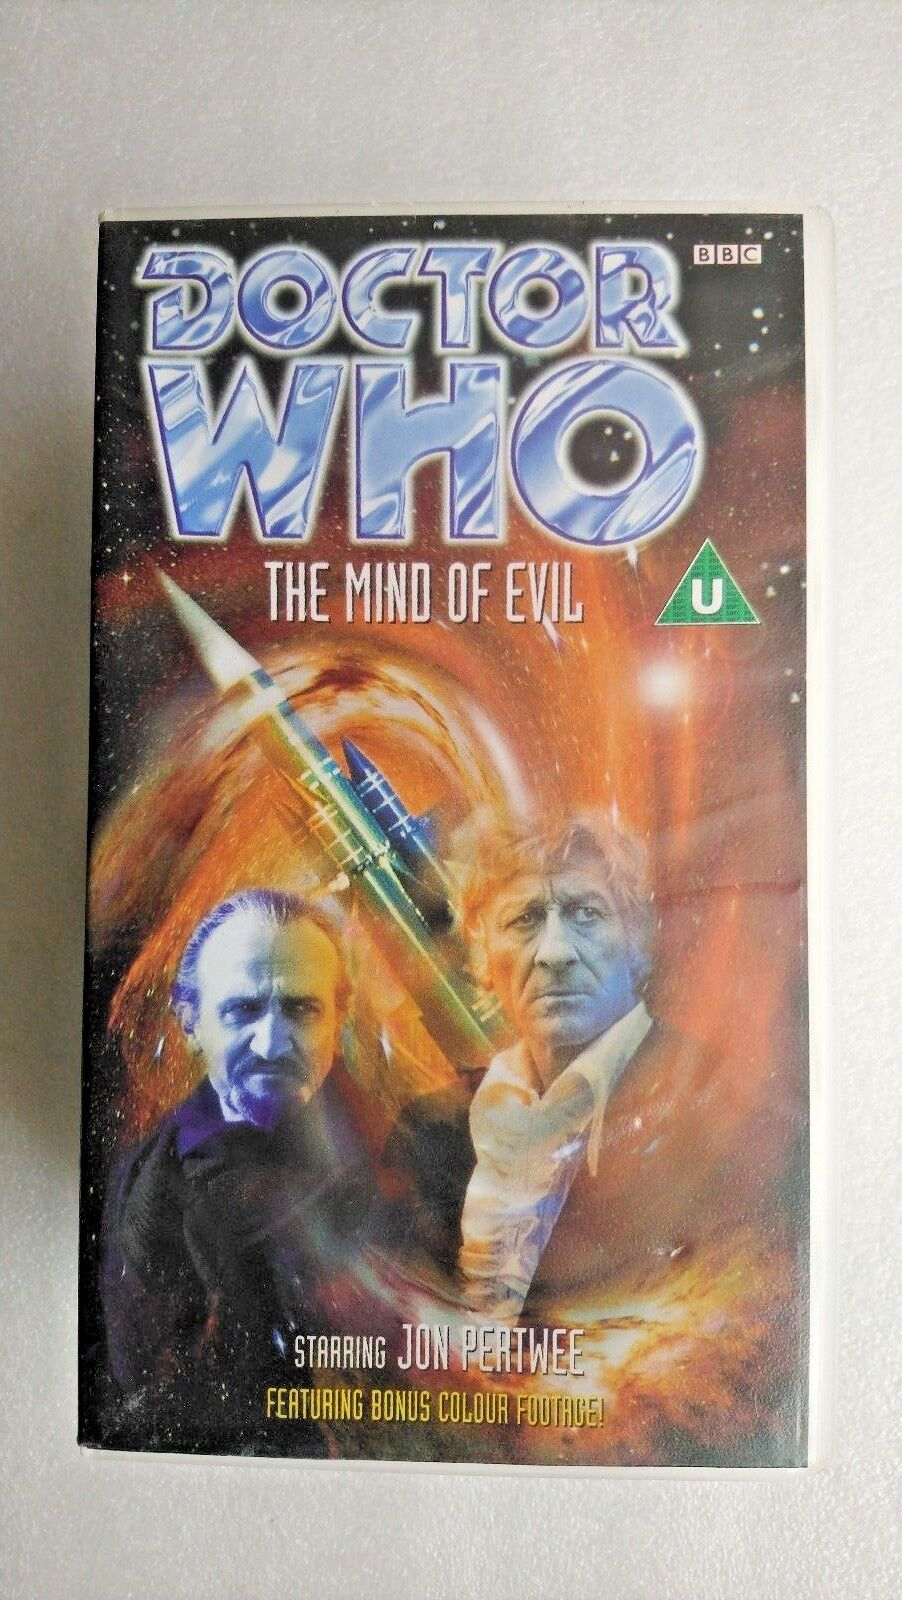 Doctor Who - The Mind Of Evil (VHS, 1998, 2-Tape Set) - Jon Pertwee